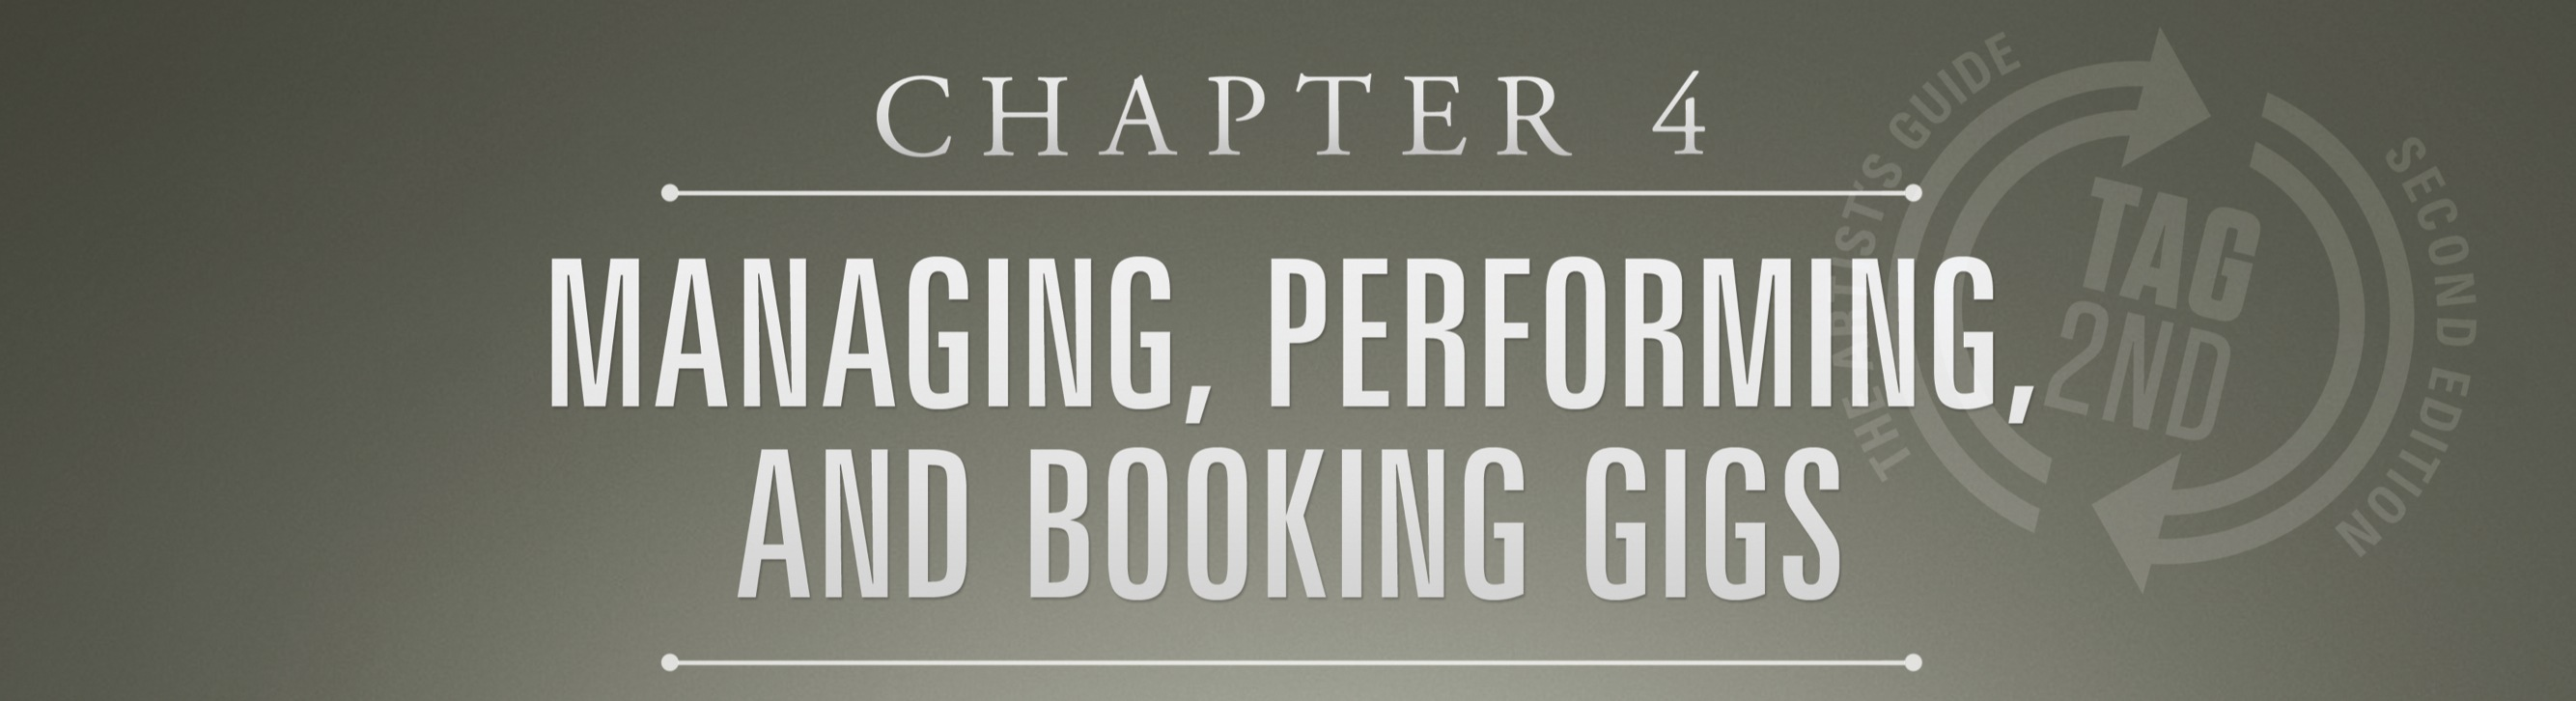 chapter 4, managing, performing and booking gigs, loren weisman, artists guide